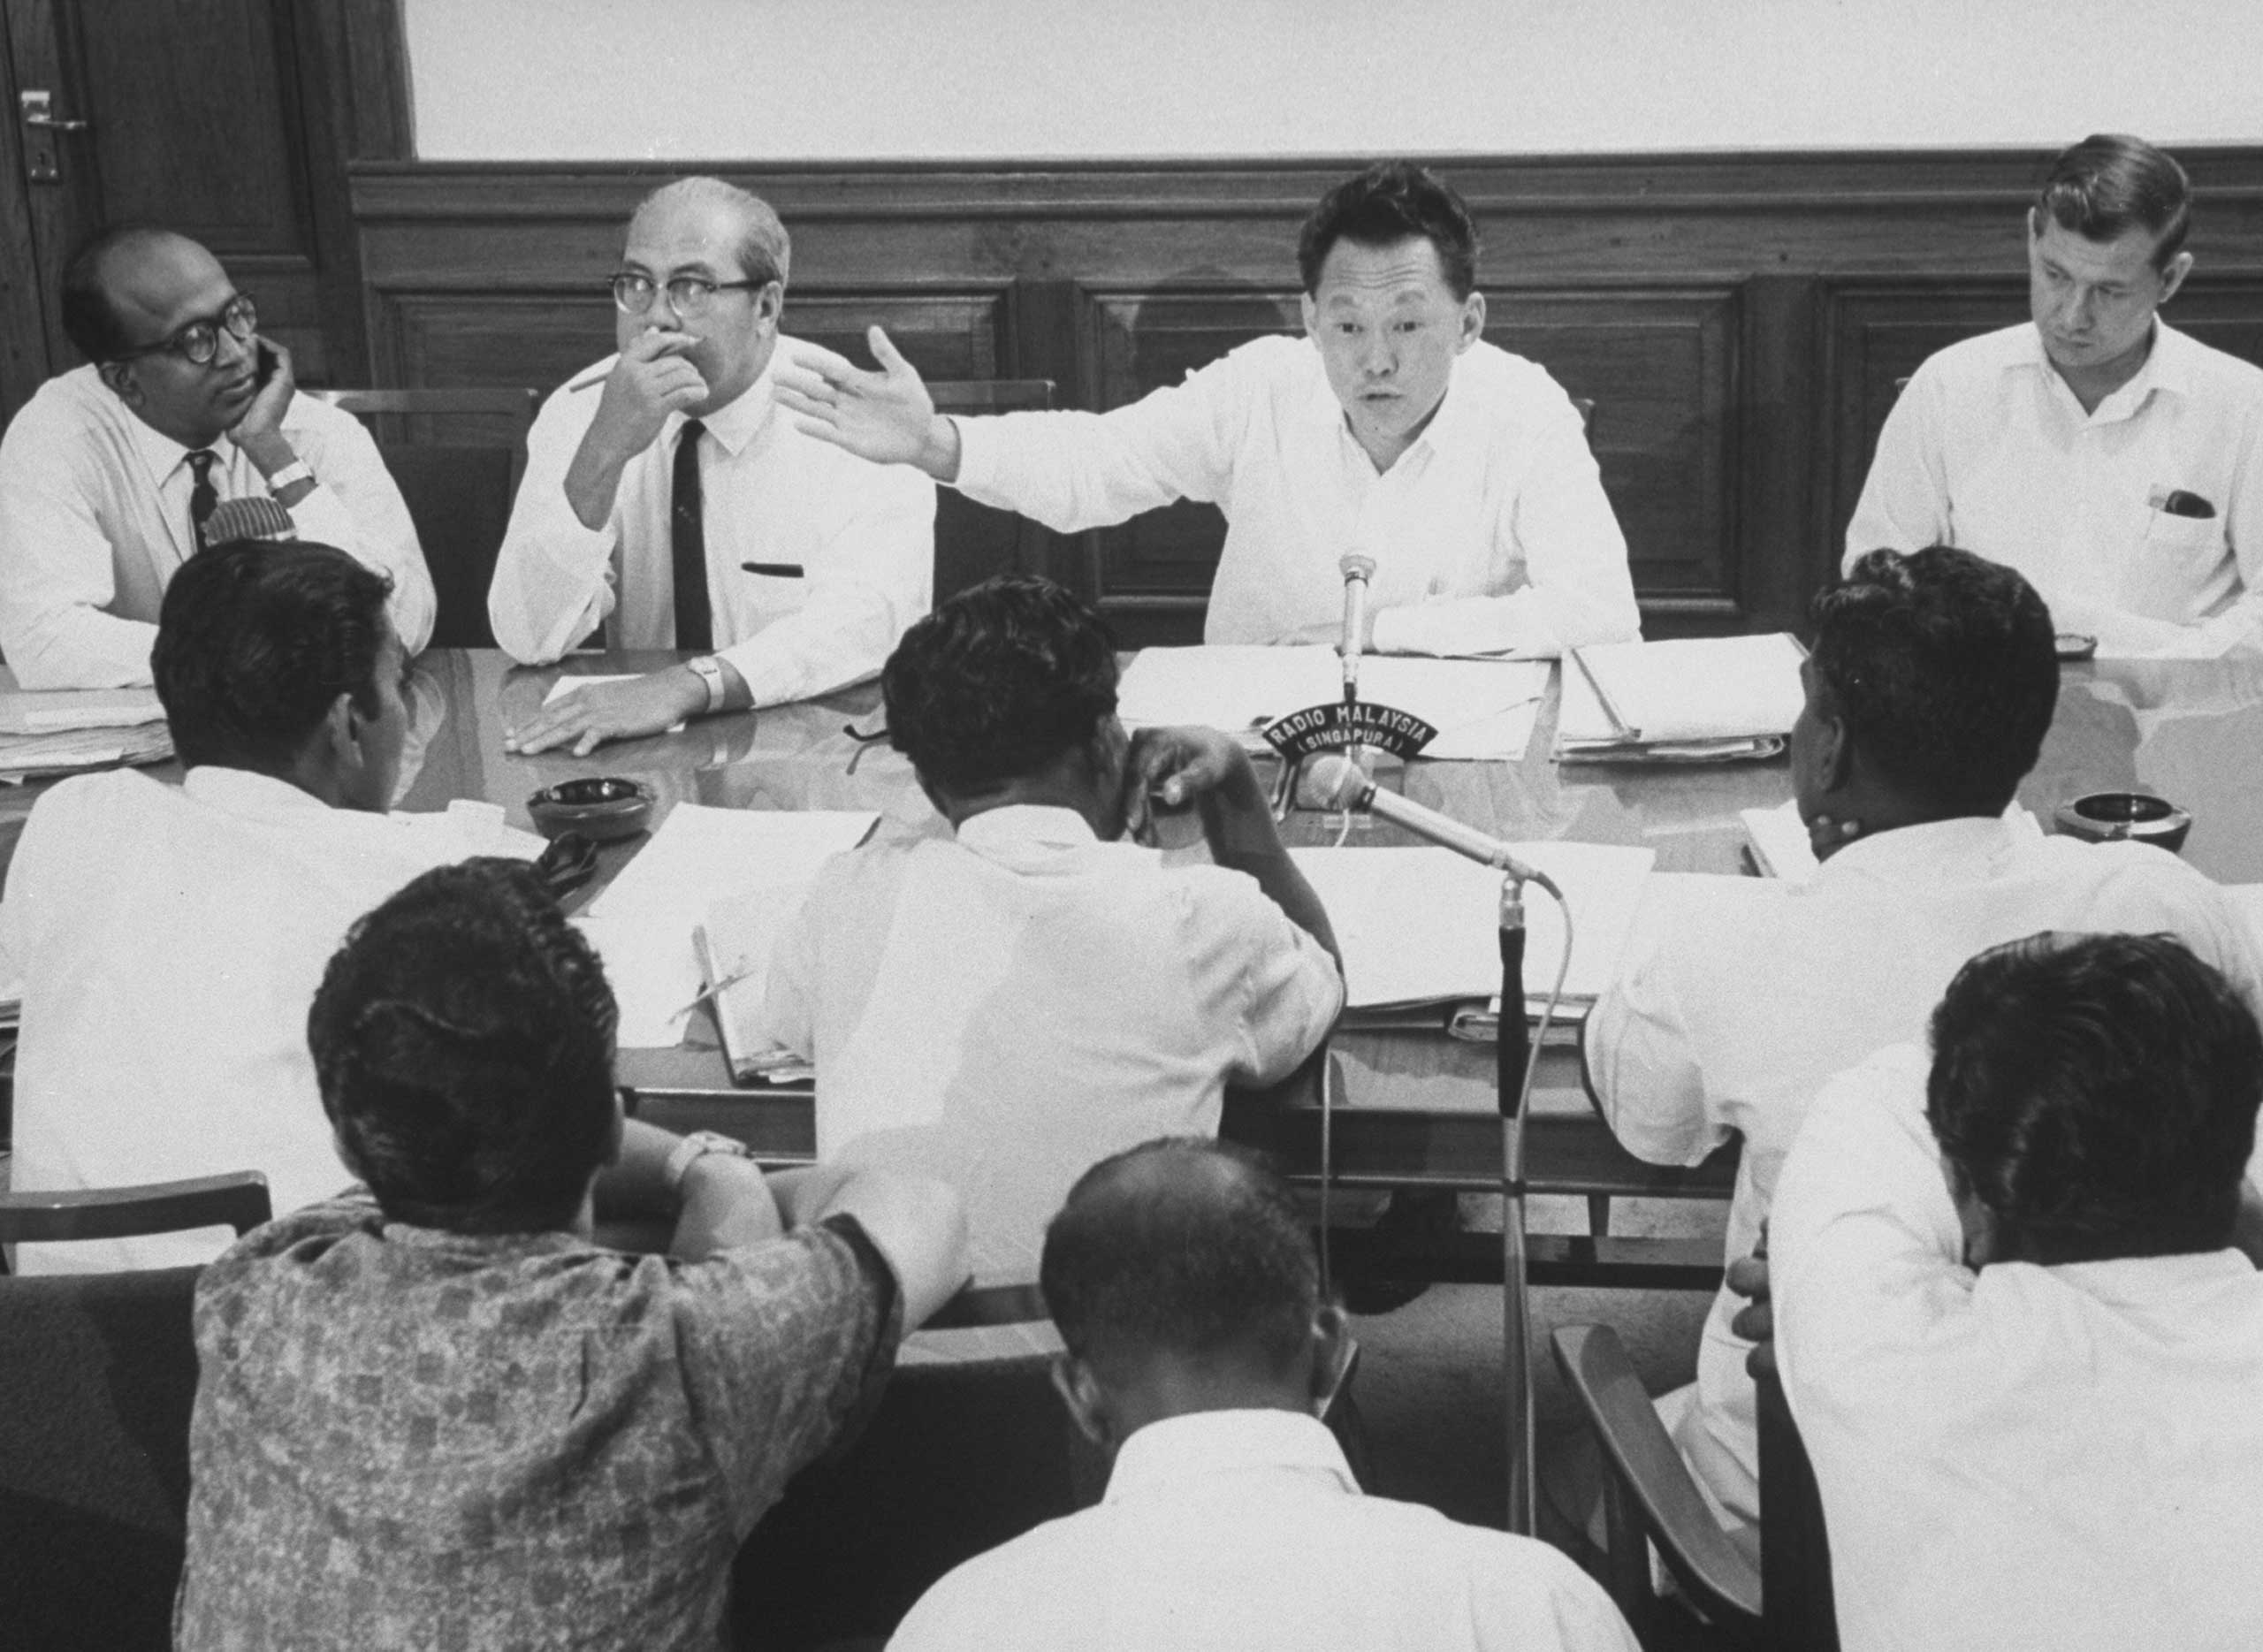 Prime Minister Lee Kuan Yew in conference with Labor leaders during strike threat in 1965.